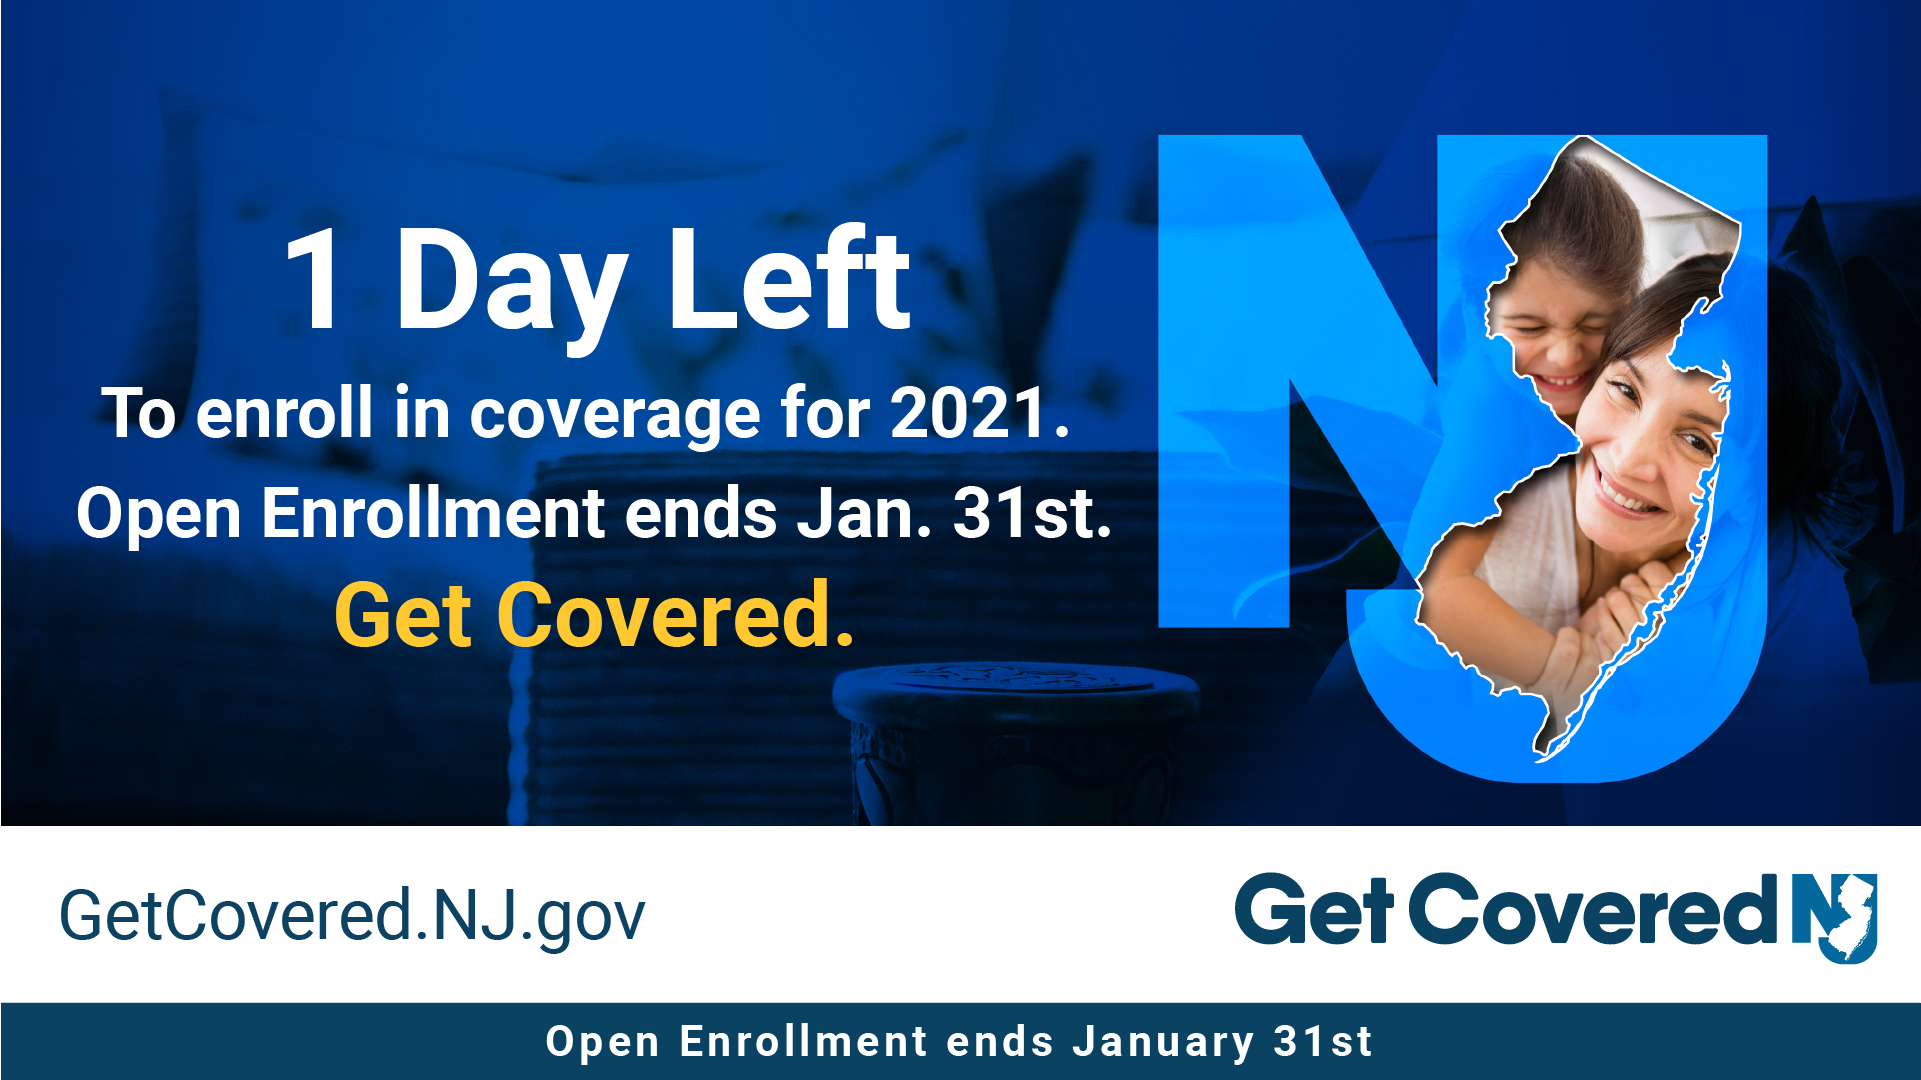 Image Contains screenshot of 1 Day left to enroll in coverage